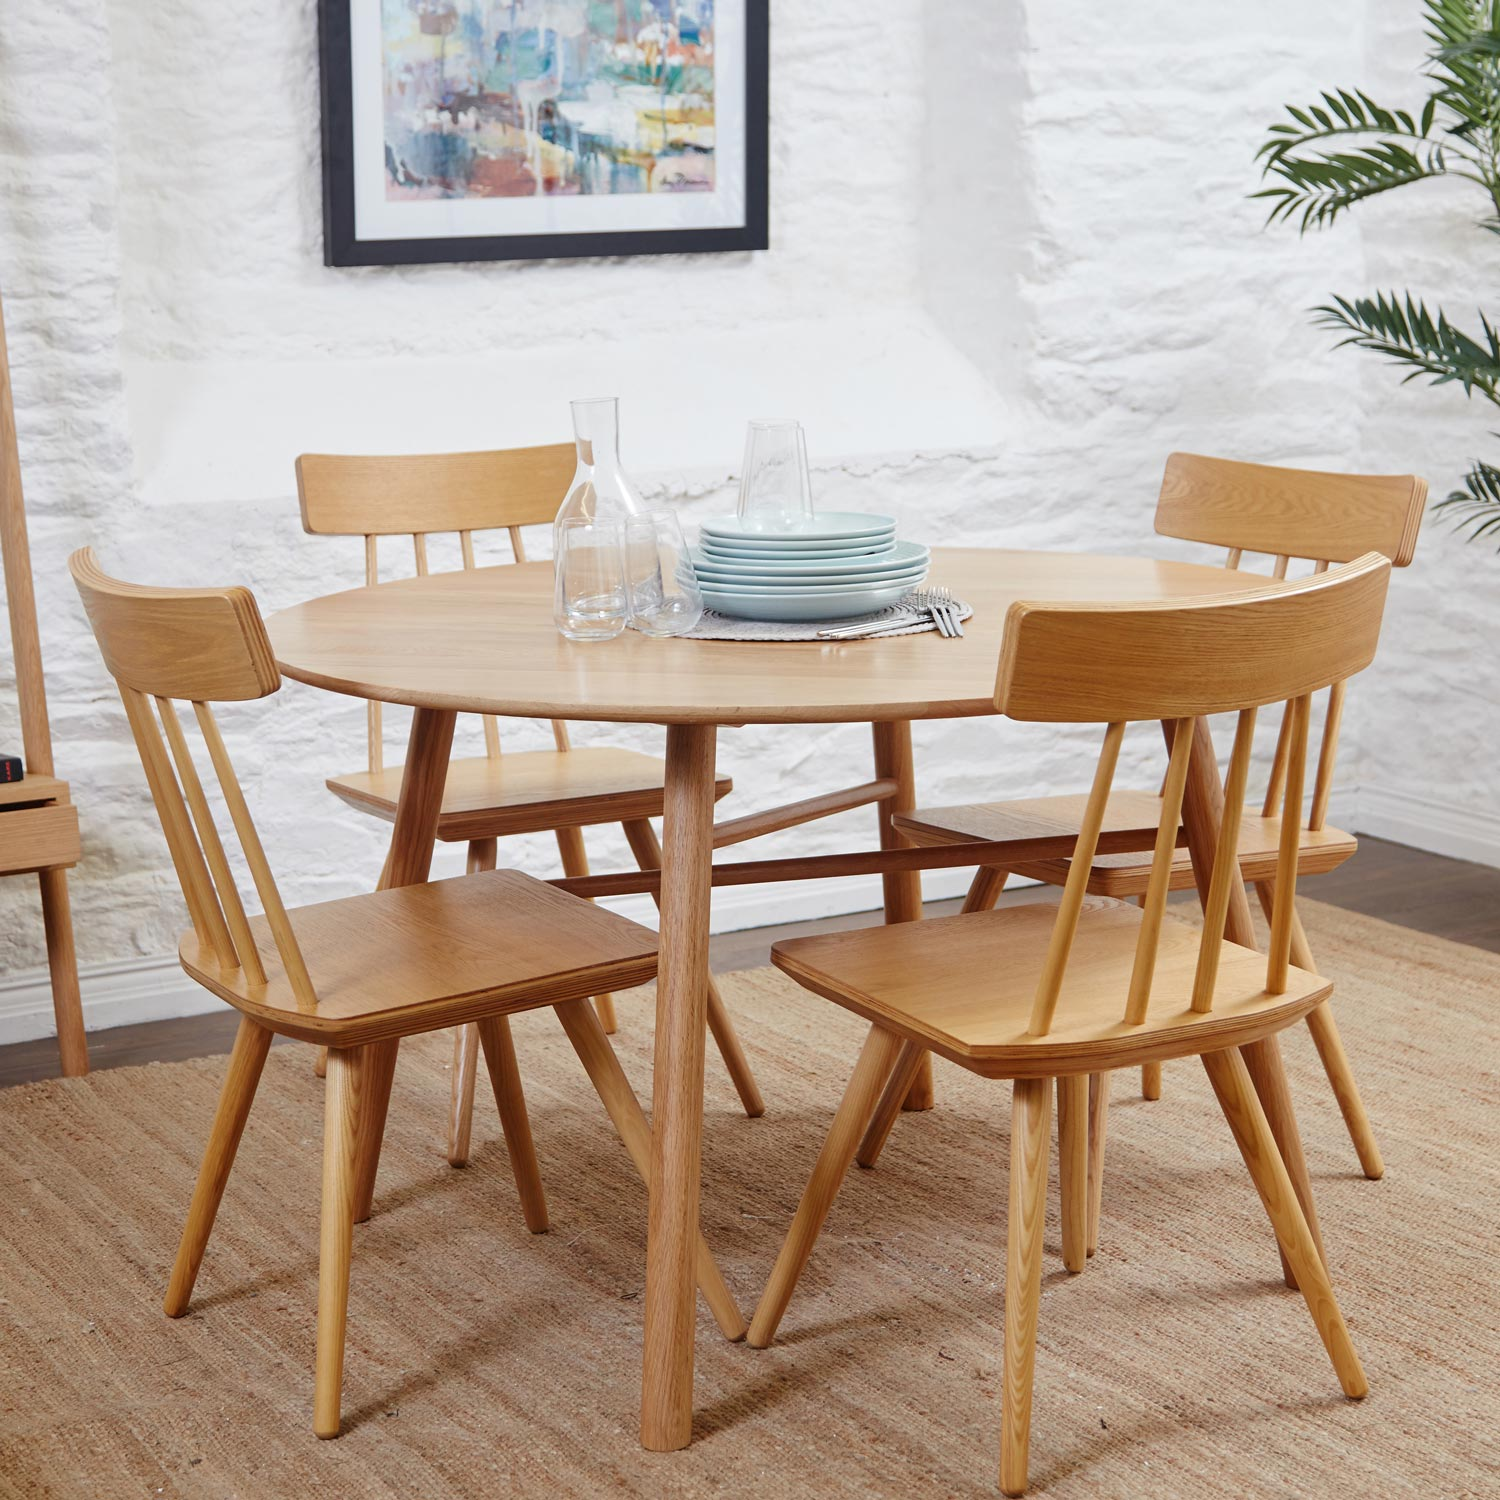 Whywood Round Oak Dining Table